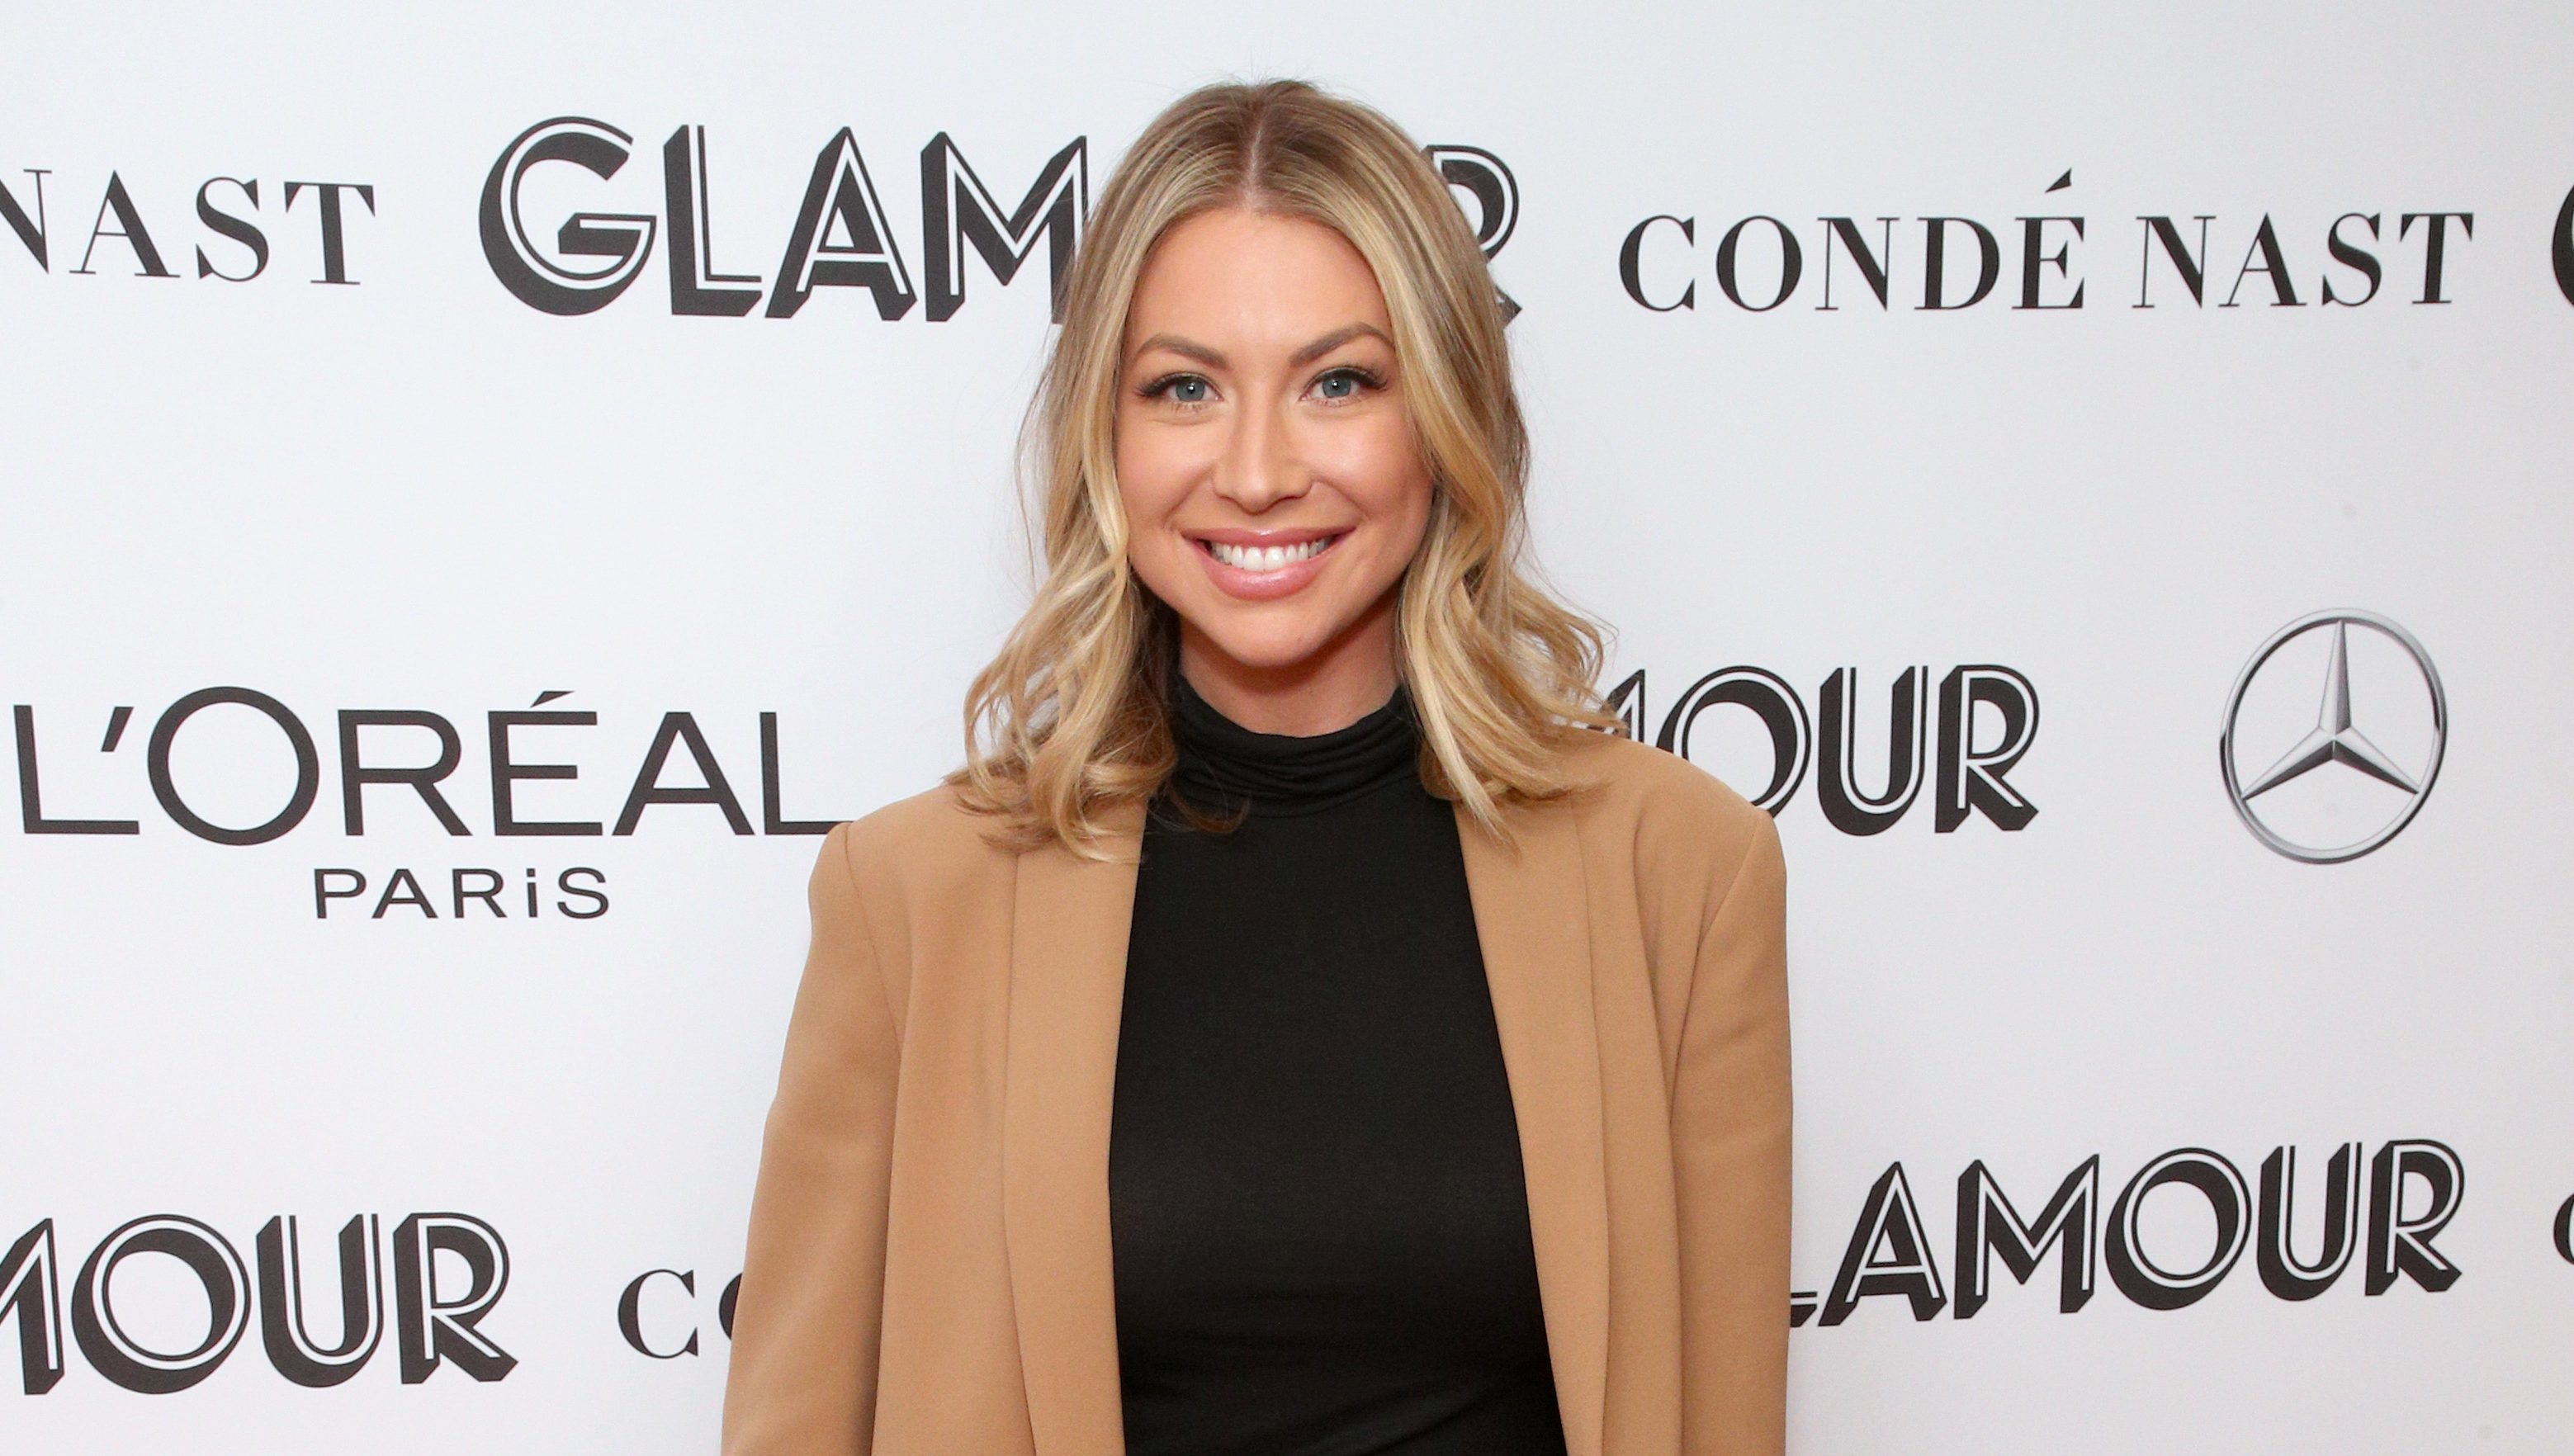 Stassi Schroeder Opens Up About Her Postpartum Body